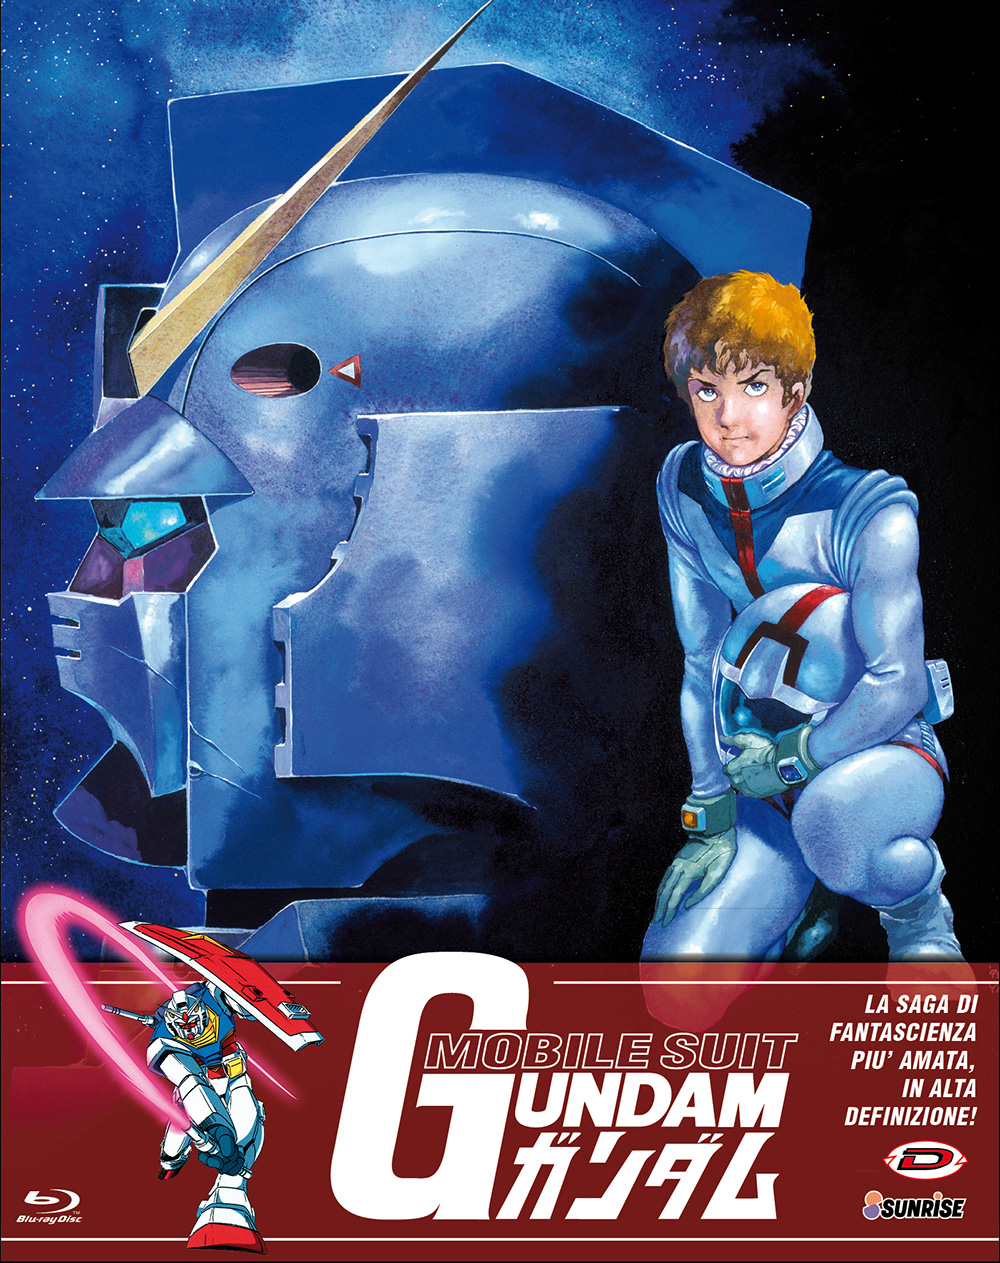 COF.MOBILE SUIT GUNDAM - THE COMPLETE SERIES (EPS 01-42) (5 BLU-